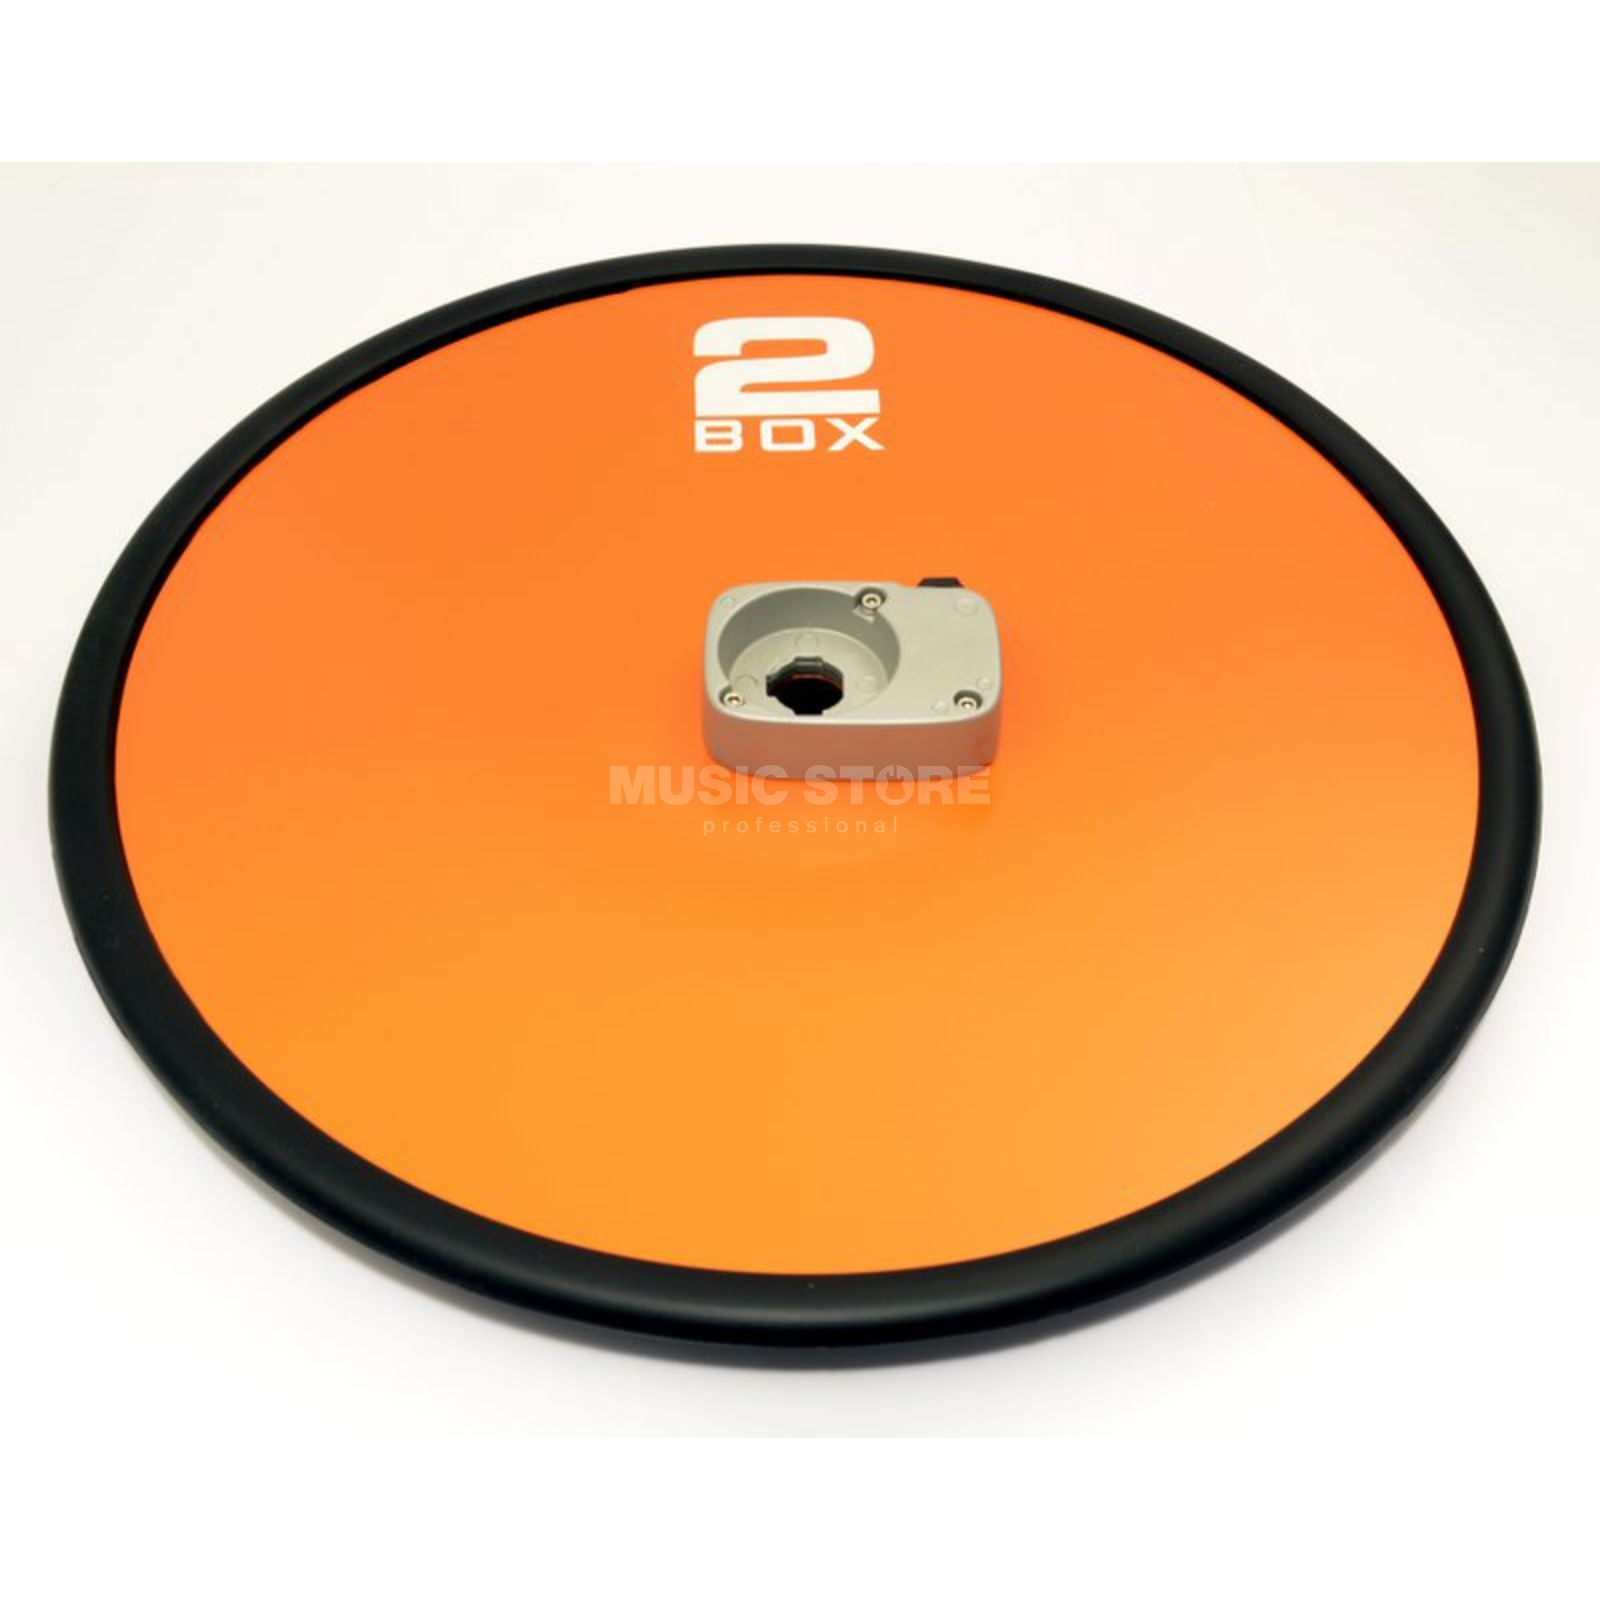 "2Box Drum it Five CymbalPad 14""  Product Image"